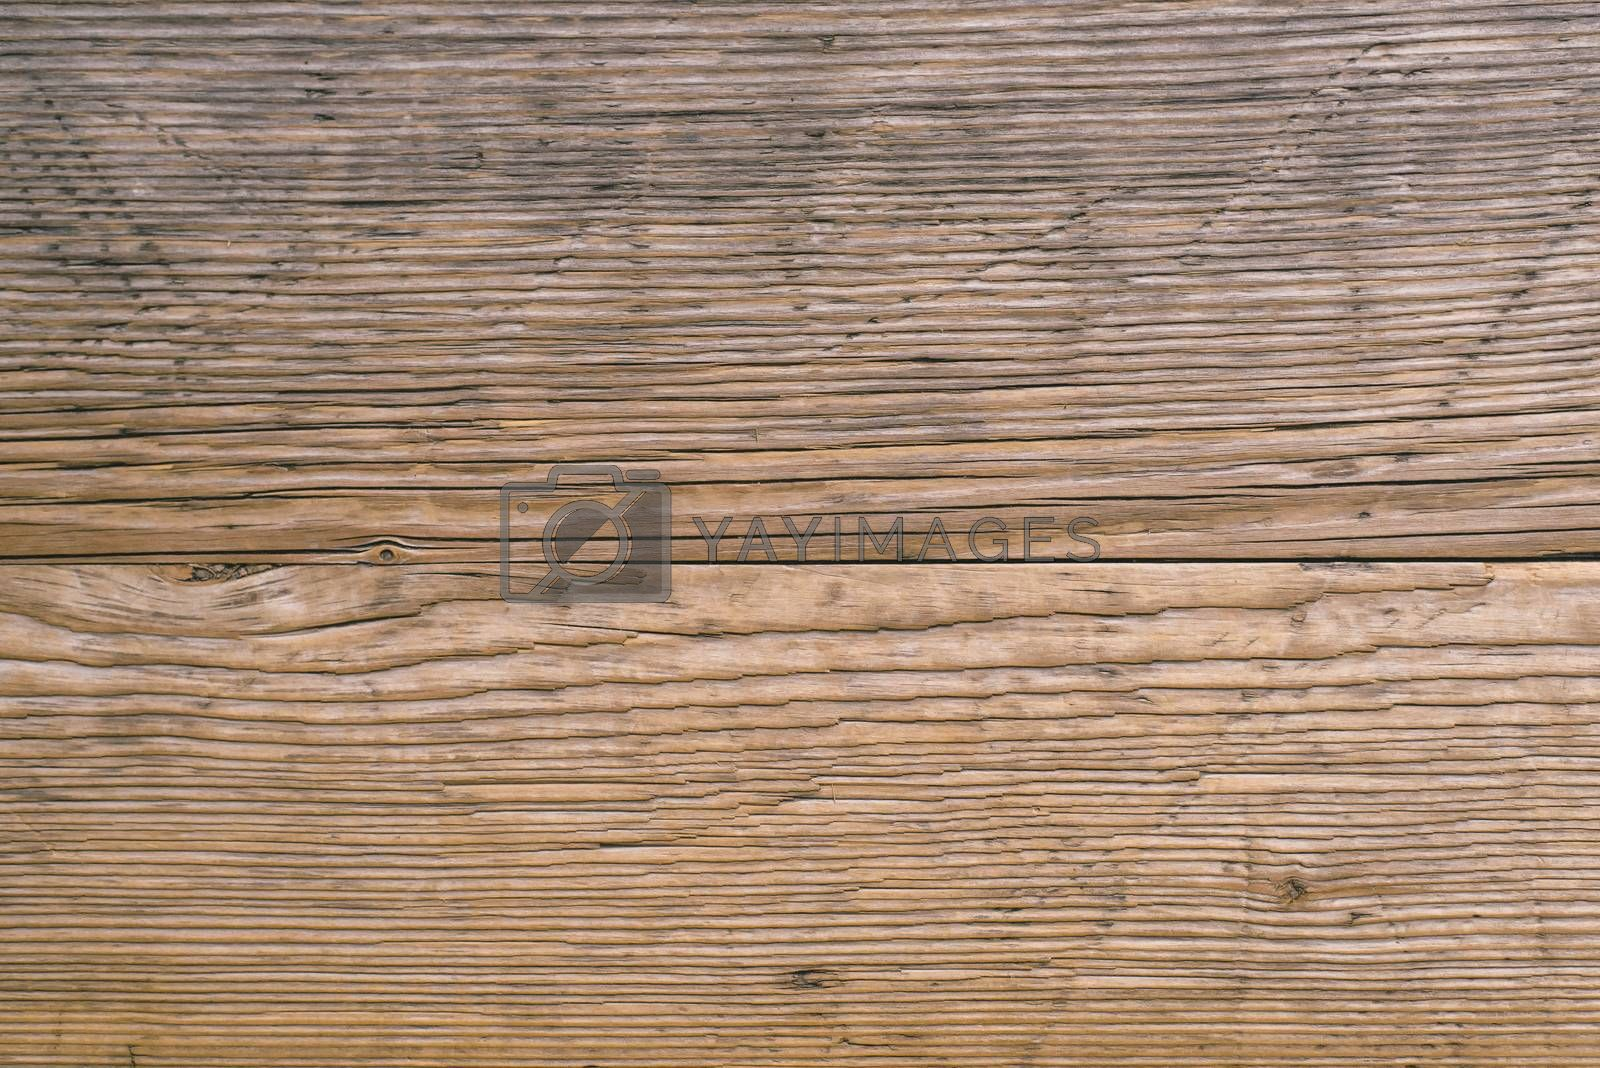 Old wooden plank texture, cracks in used oak wood board